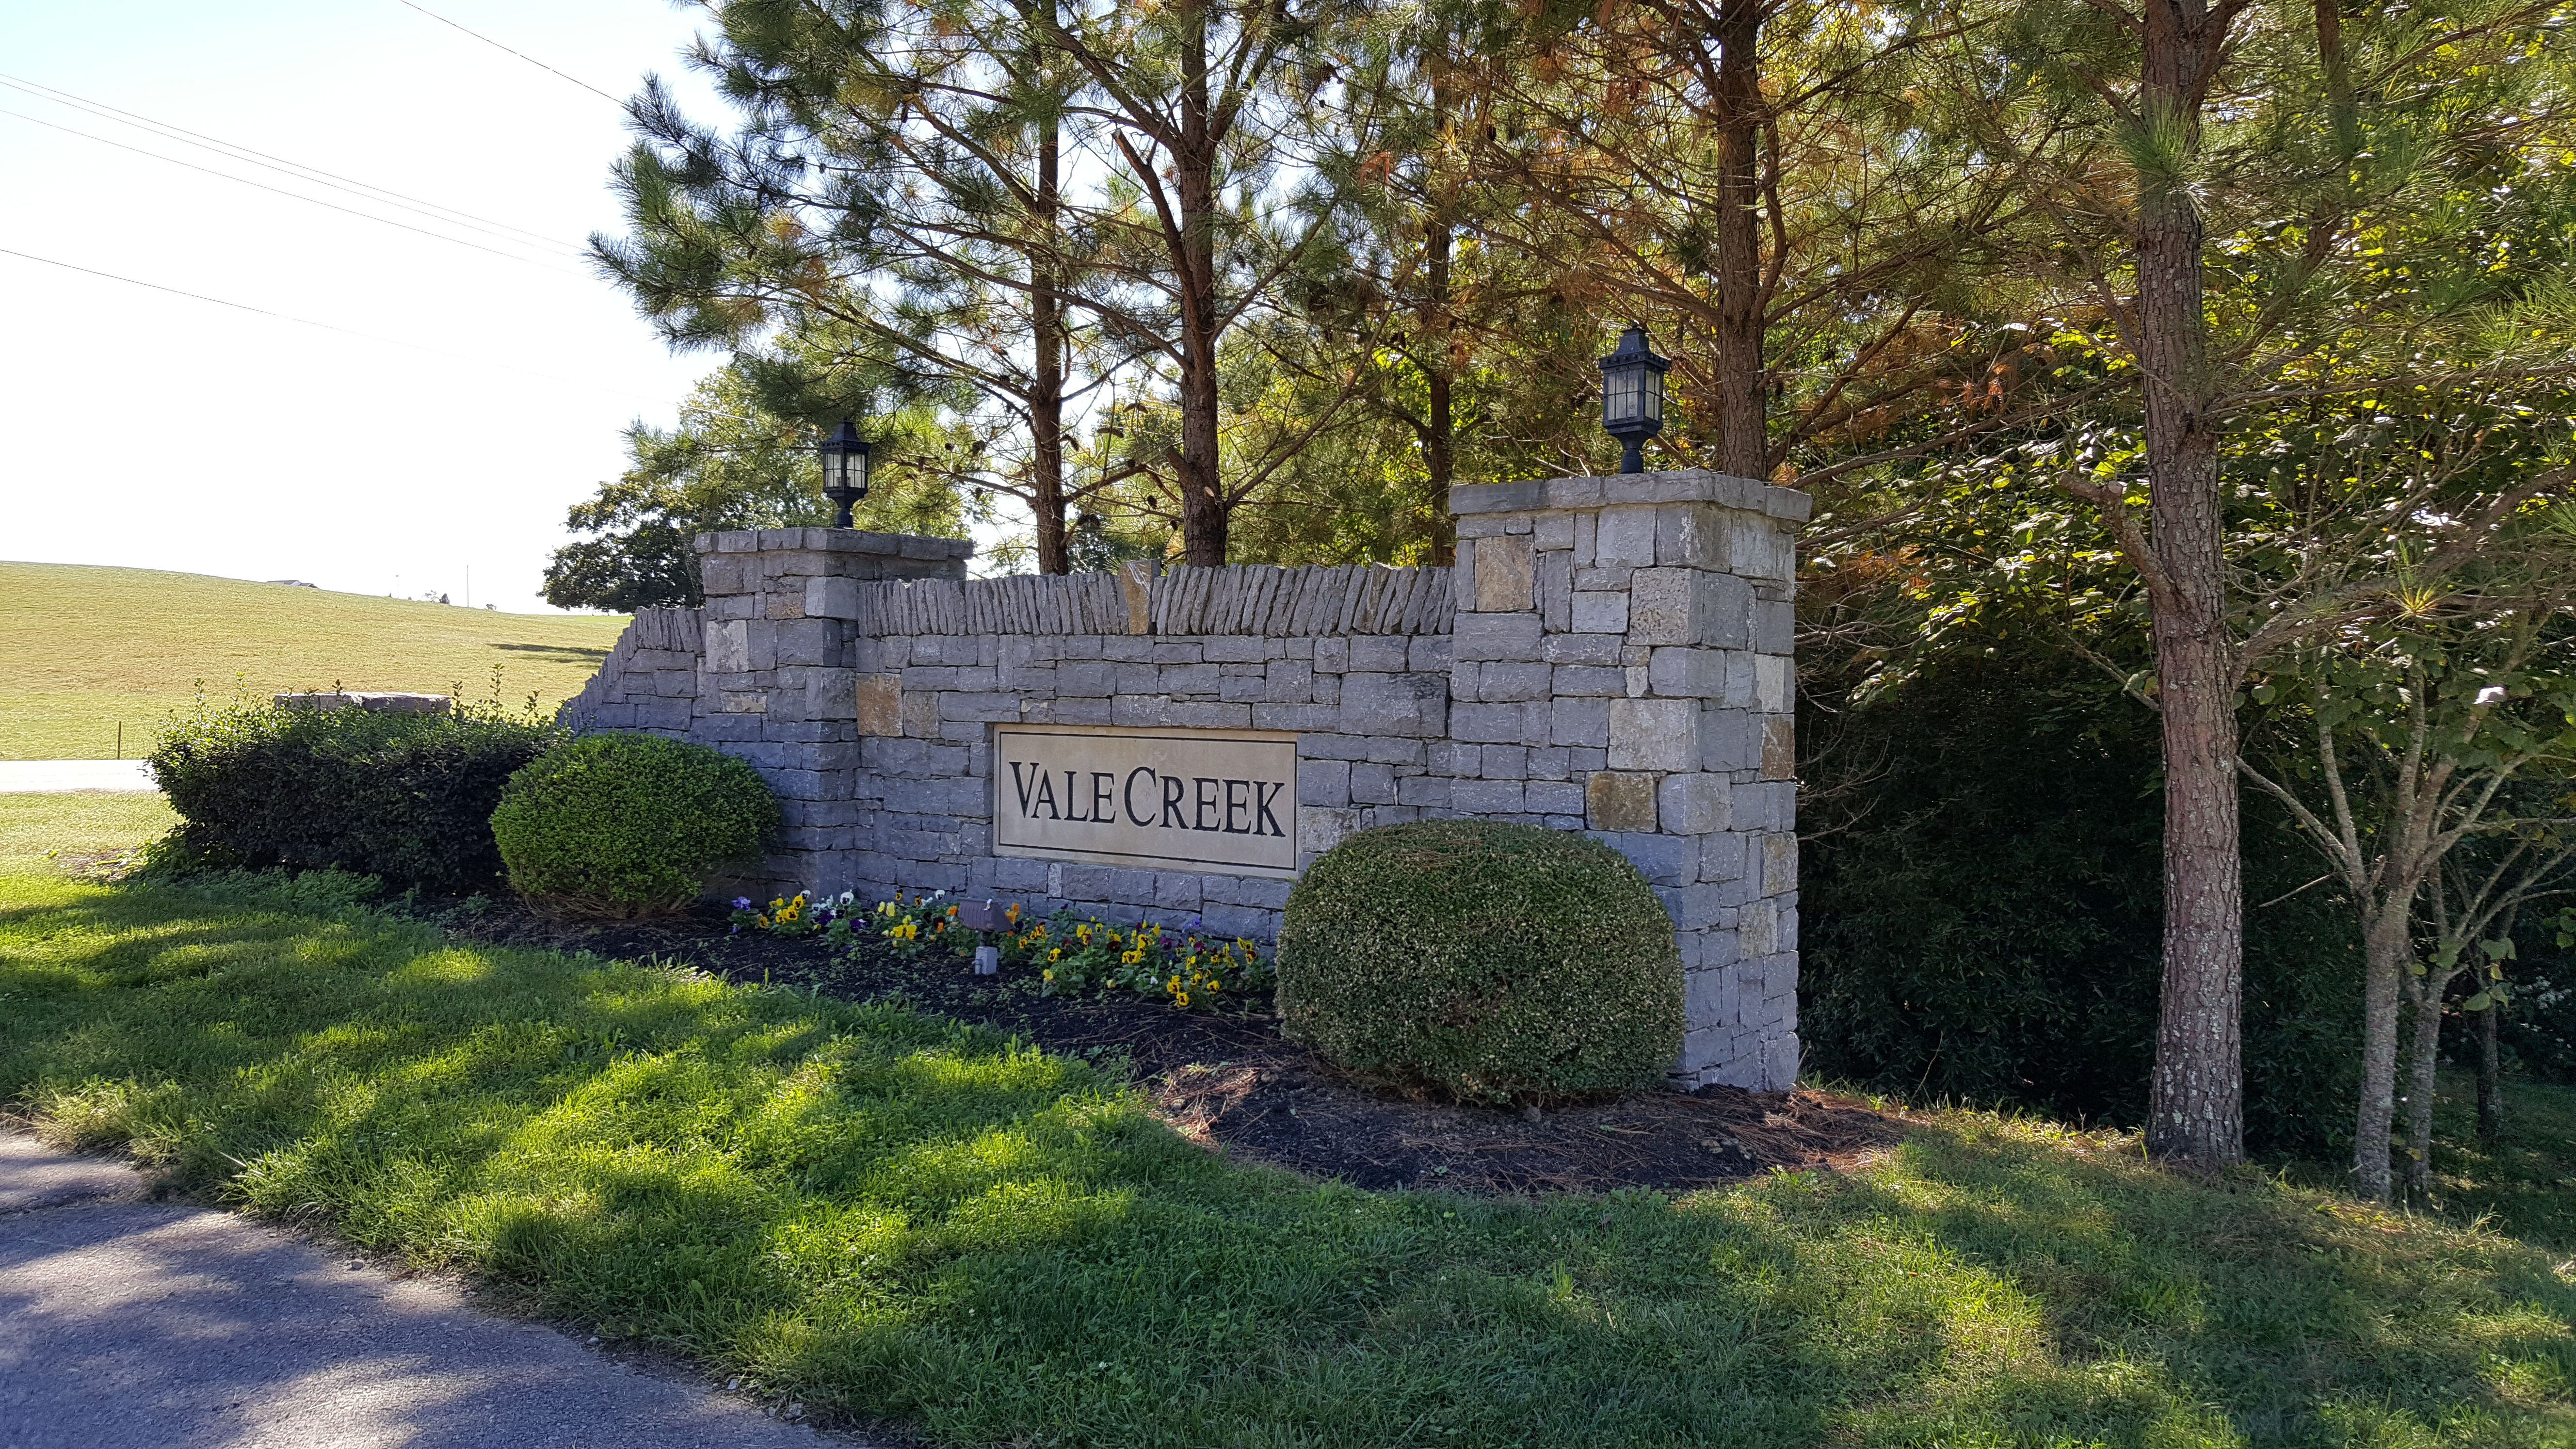 Vale creek subdivision custom homes for sale on acre lots for Custom homes for sale